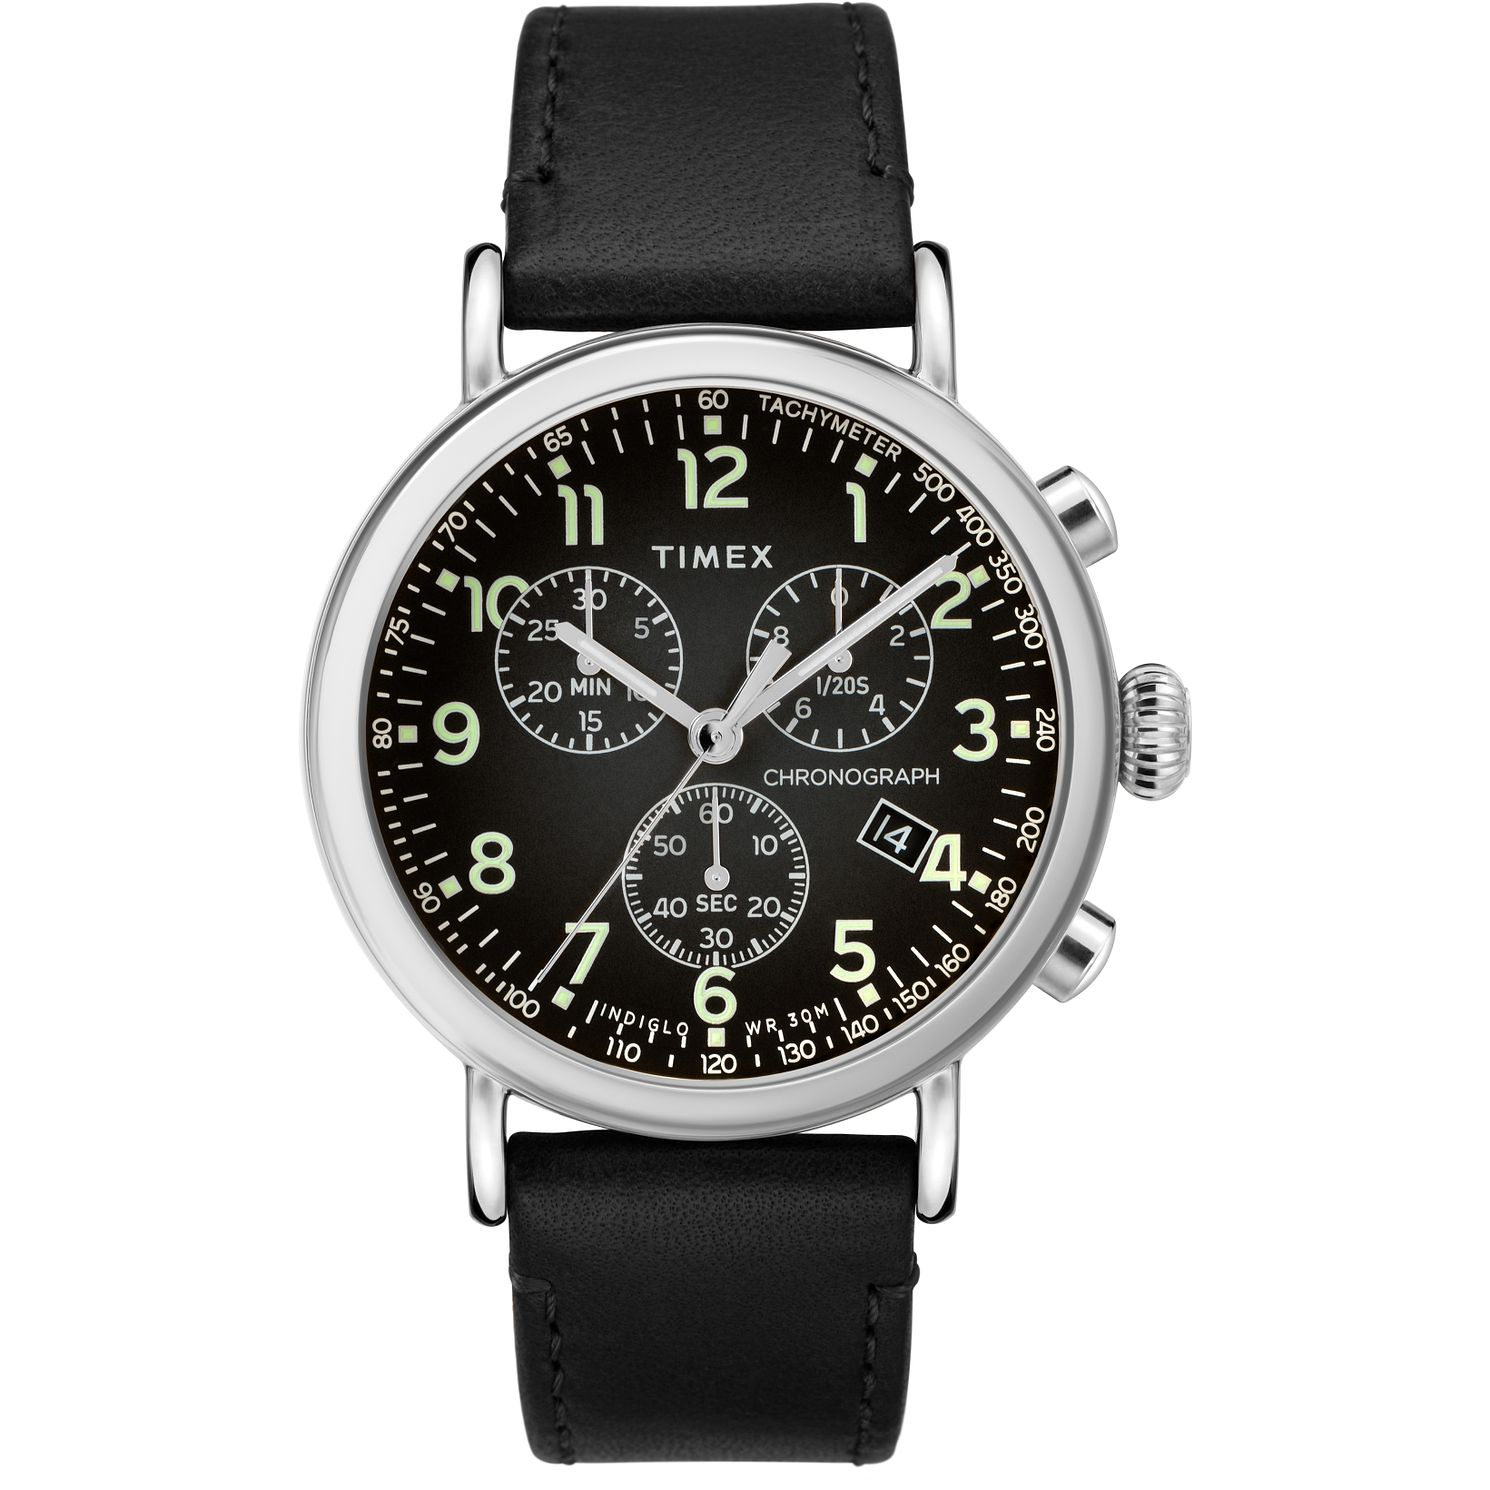 Timex The Standard Men's Black Leather Strap Watch - Product number 5825547